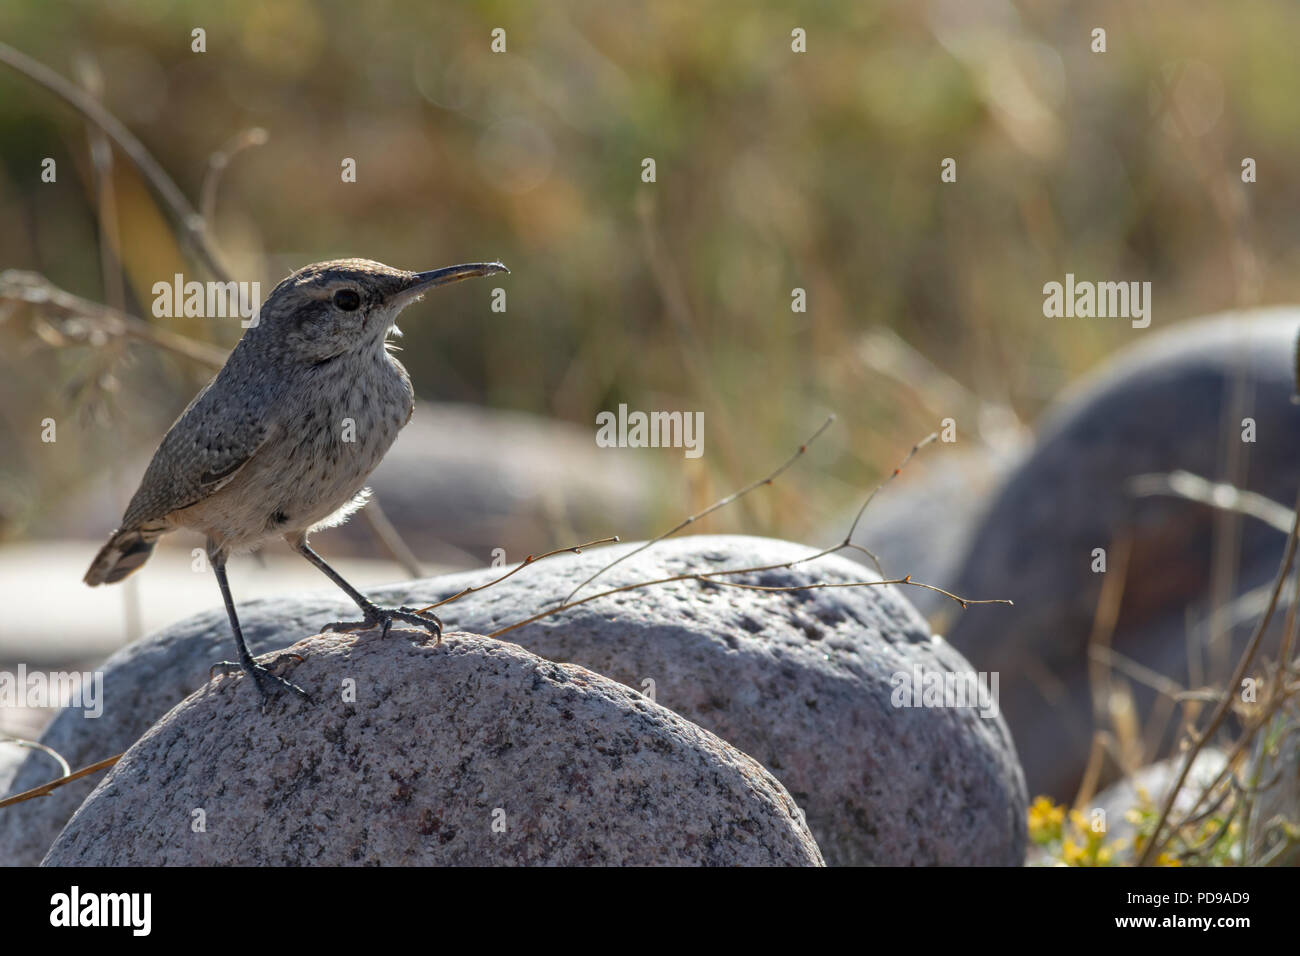 Rock Wren, Pawnee Buttes National Grassland, Colorado US. - Stock Image